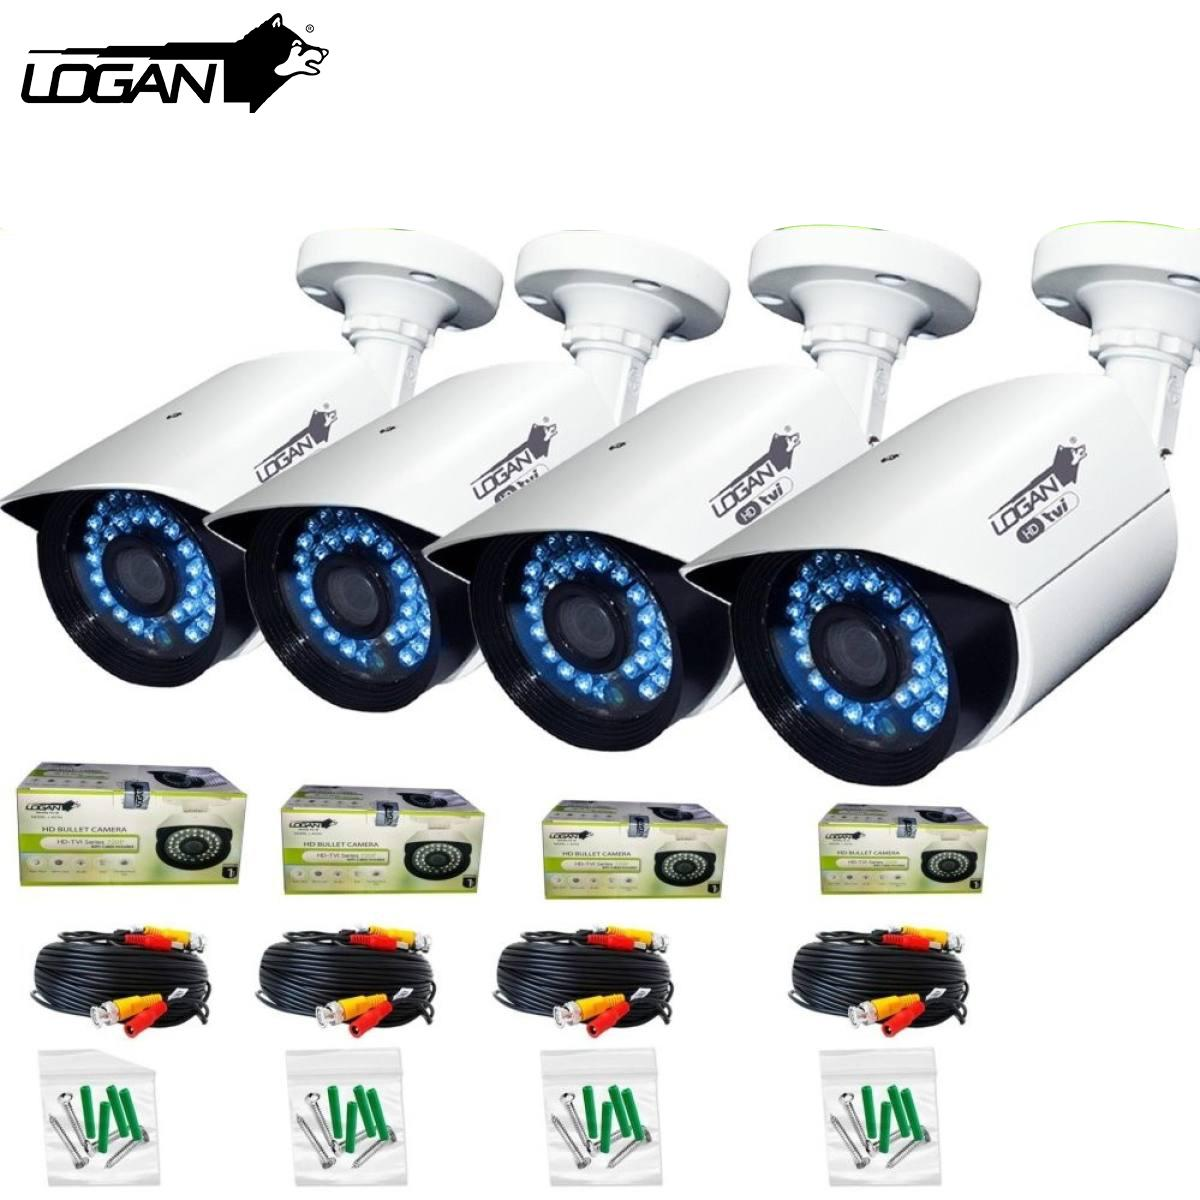 Logan LBX1M HD-TVI Night Vision CCTV 720p Weatherproof Proof 4Pcs Metal Bullet Cameras with 60ft Video Cable (White)